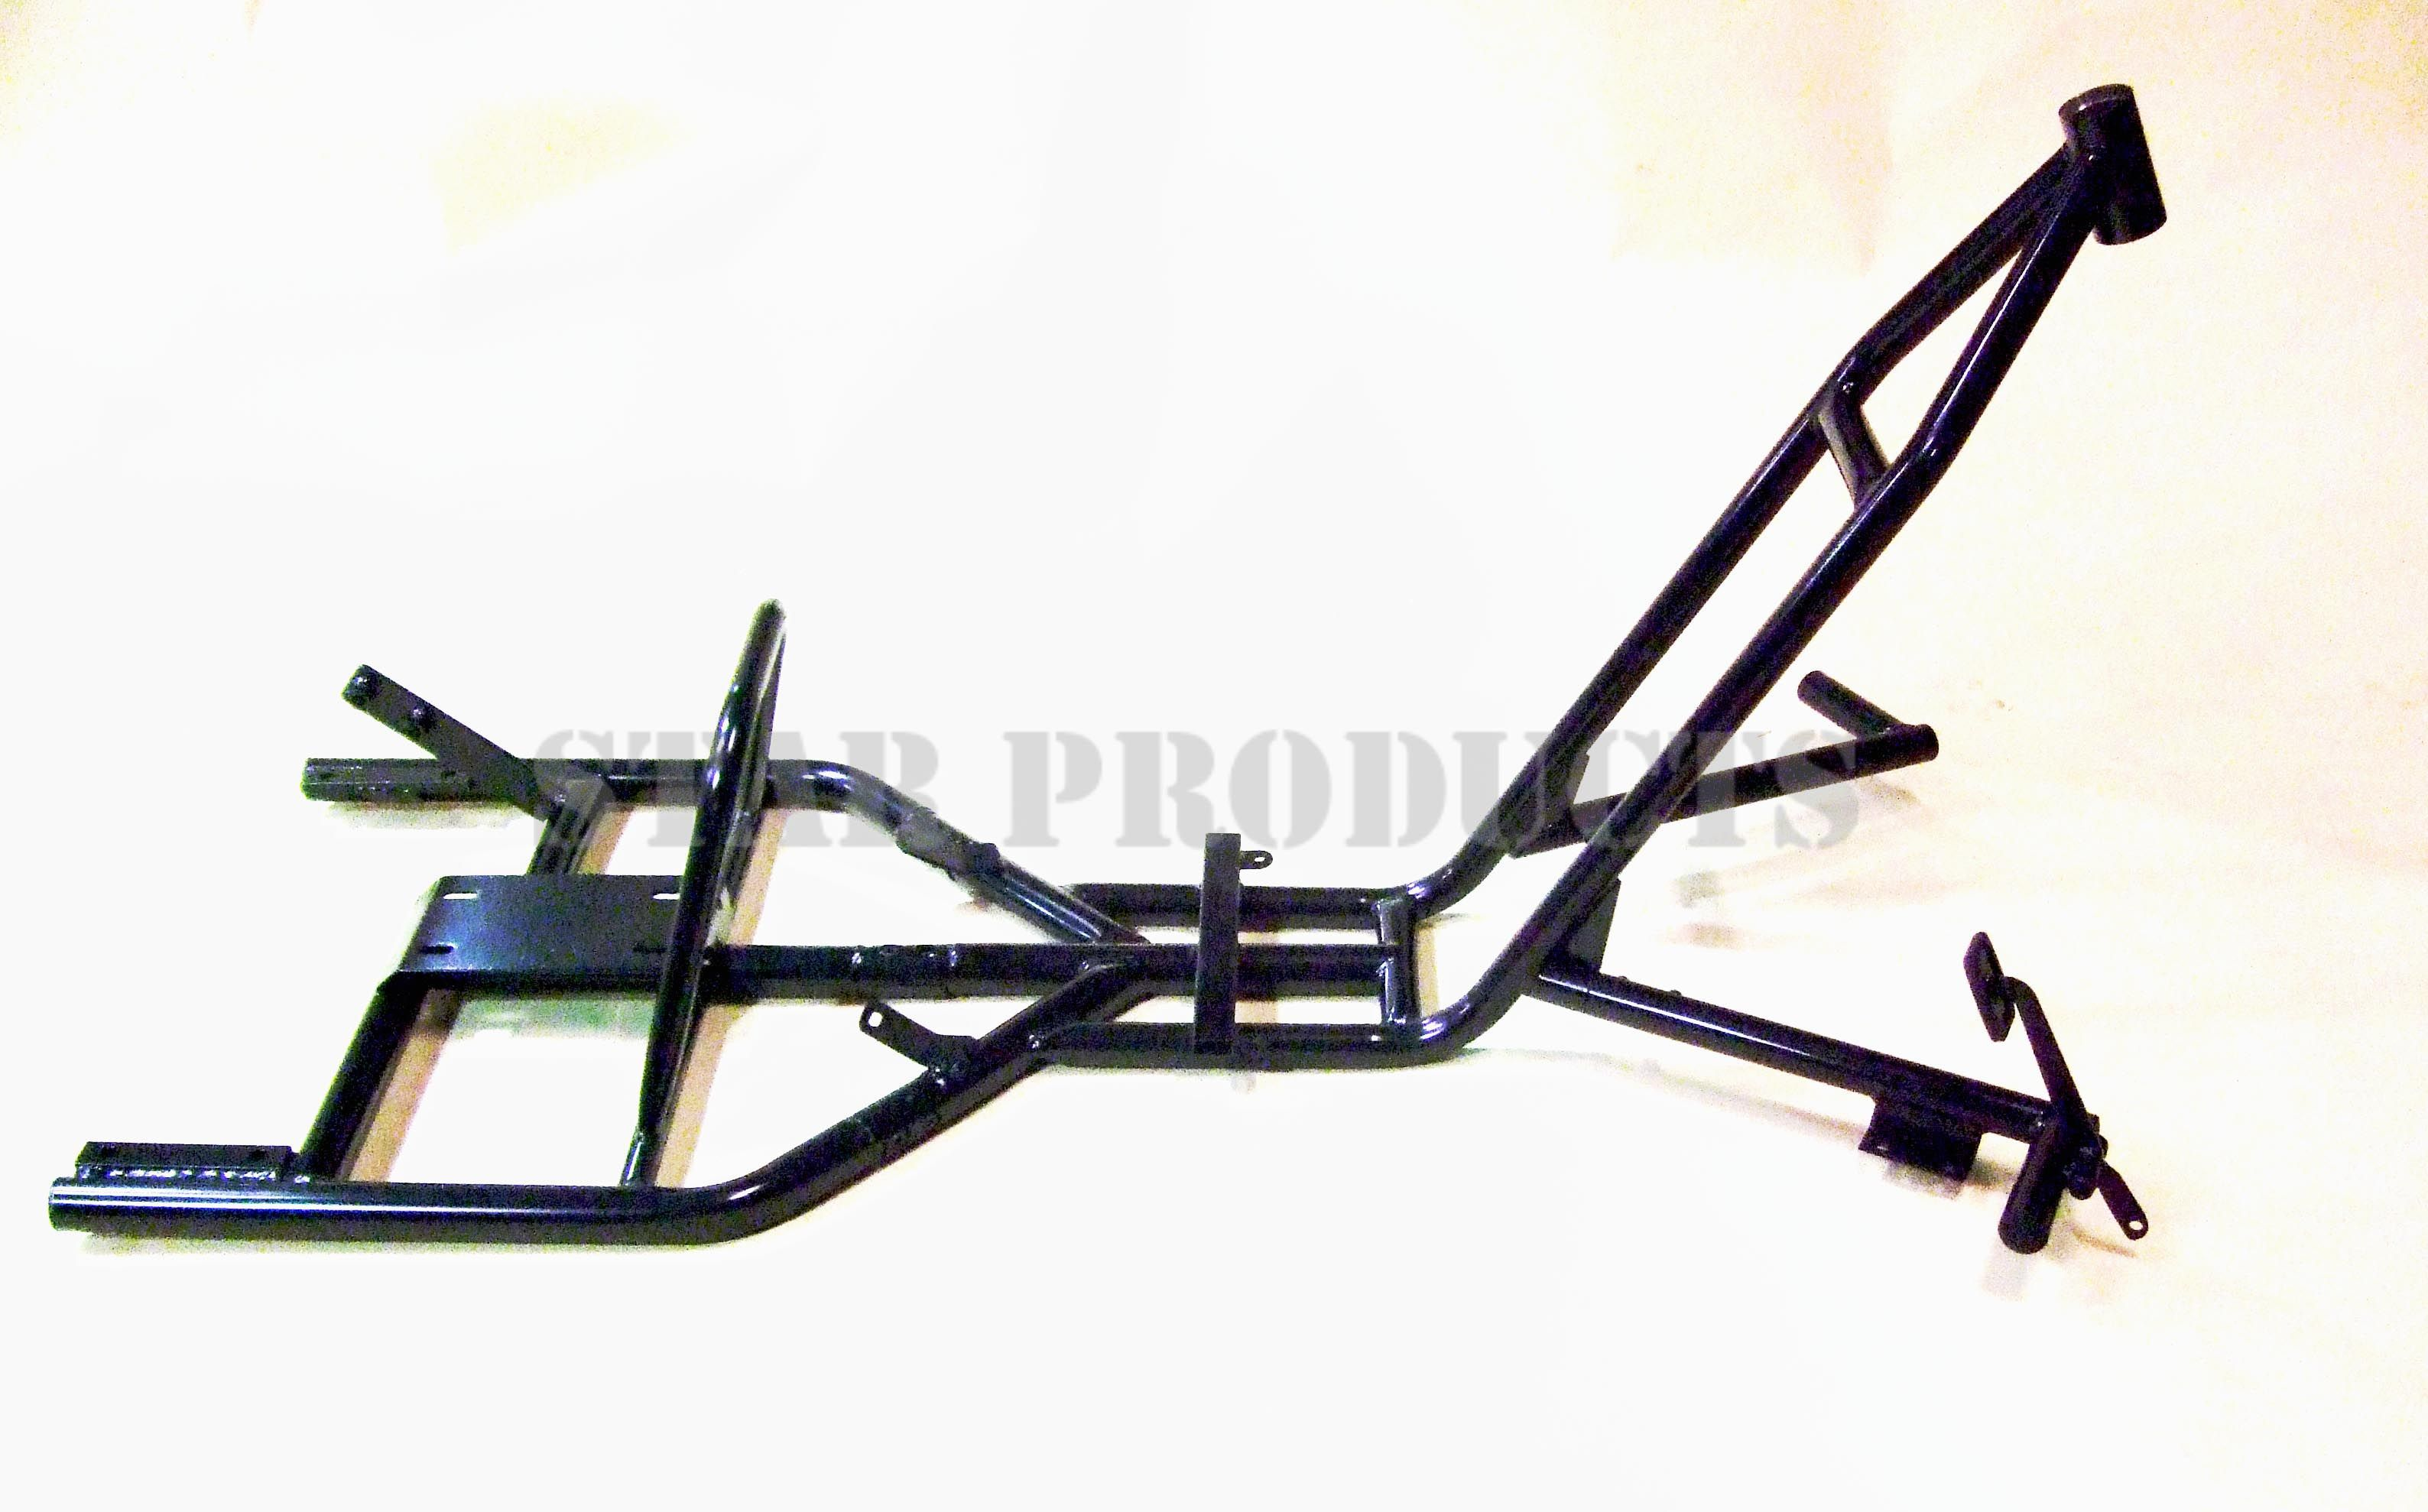 Motorised Drift Trike Frame - Black | Star Products | Drift trike ...